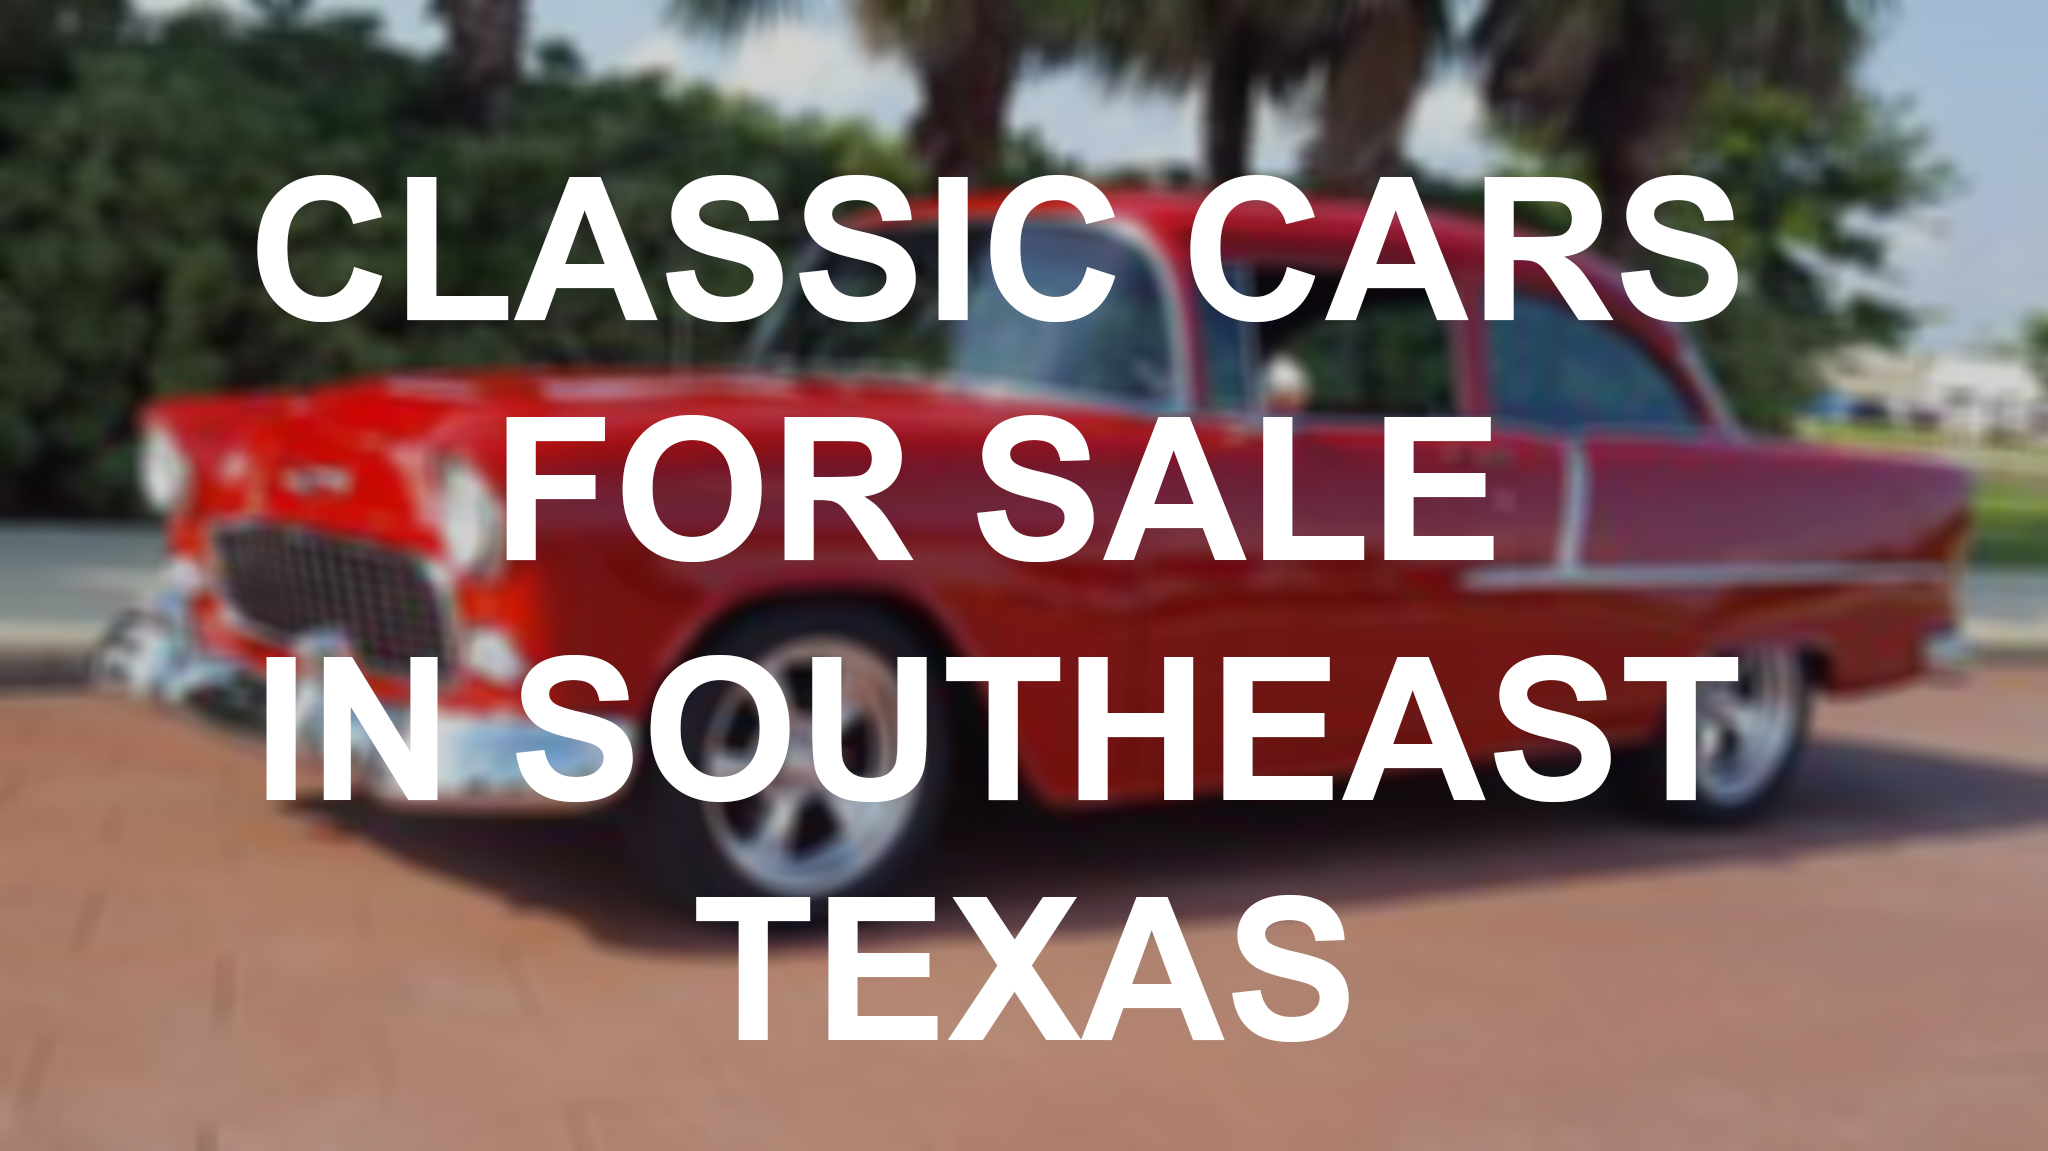 Classic Cars For Sale In Southeast Texas June 2016 Beaumont